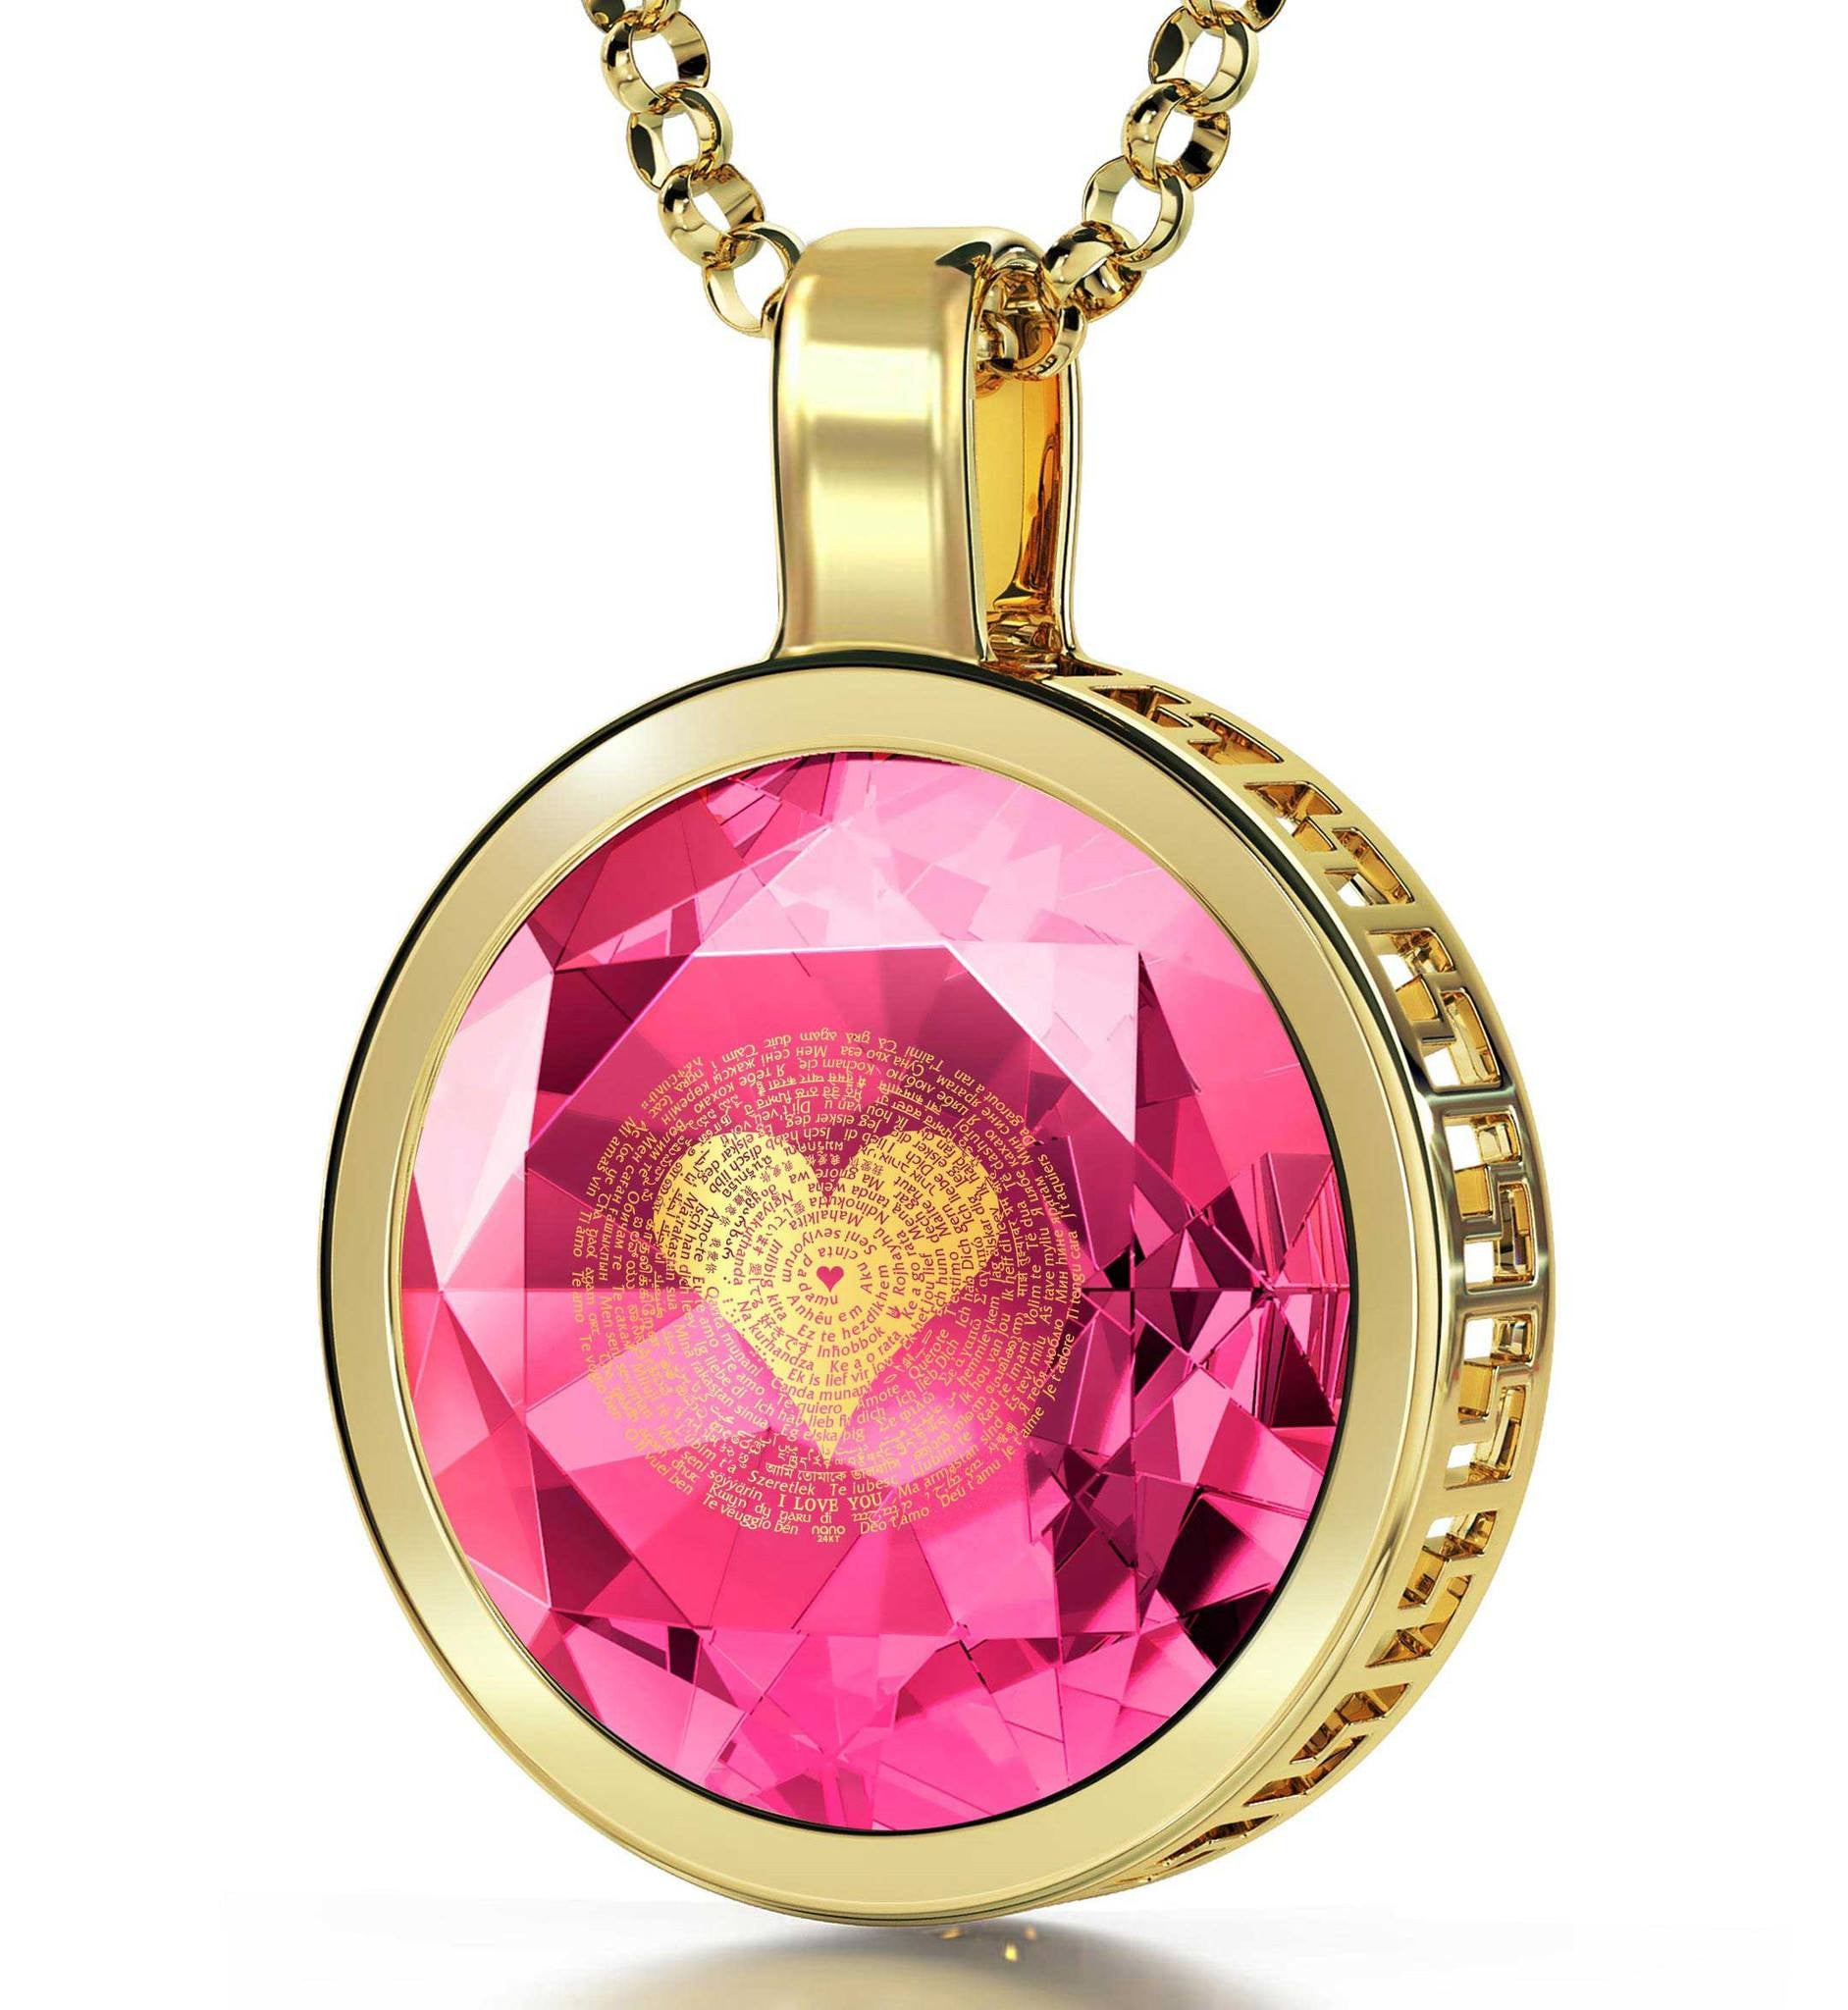 Top Gift Ideas for Women: Heart Necklaces for Girlfriend, Engraved Pendants, Anniversary Presents for Her by Nano Jewelry